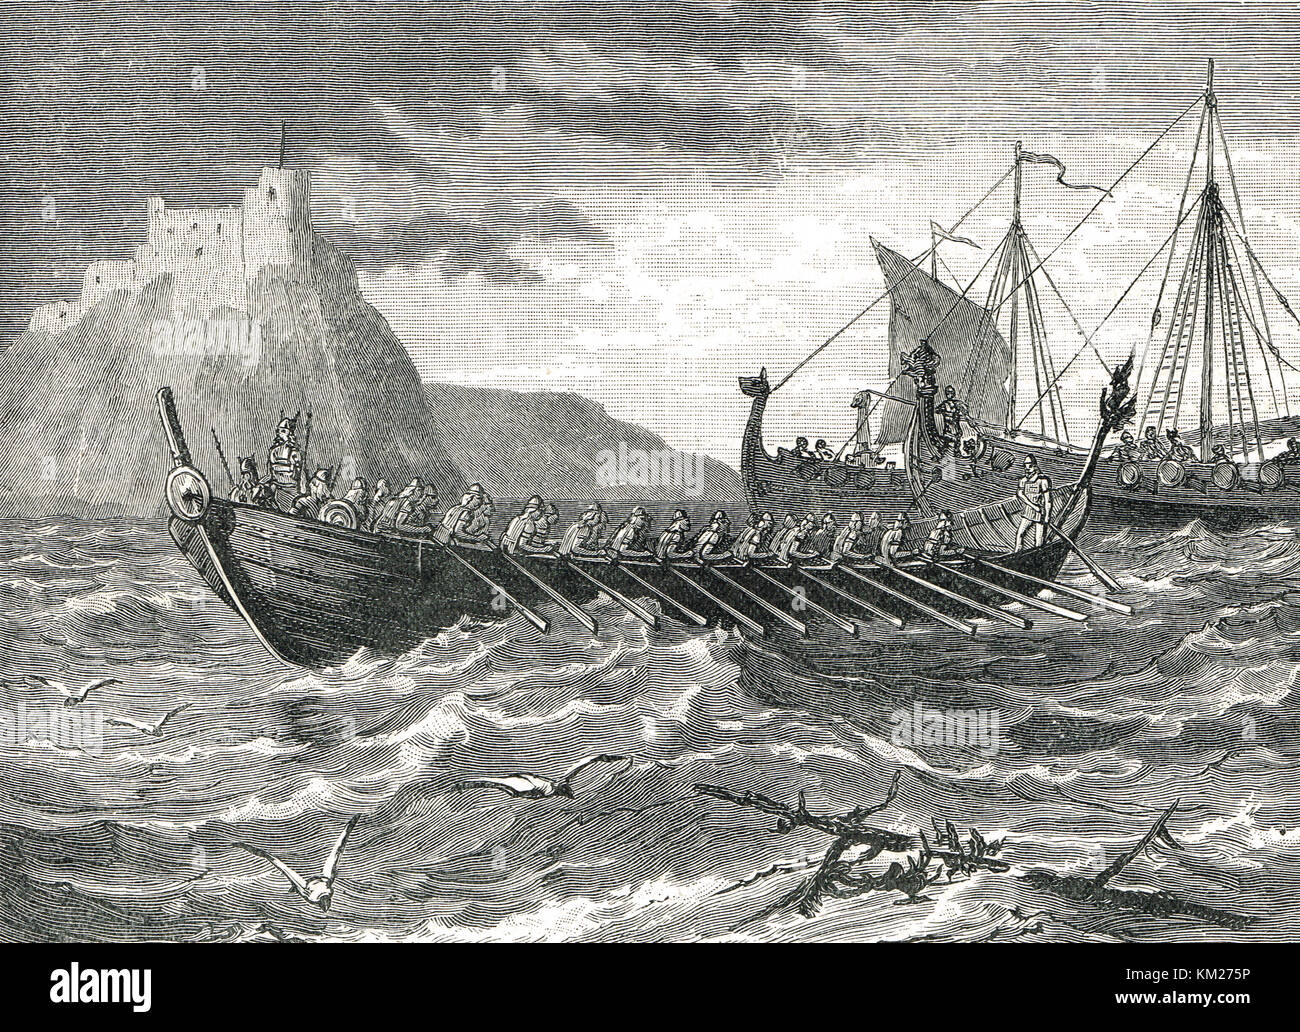 Danish Viking ships of the 9th century - Stock Image